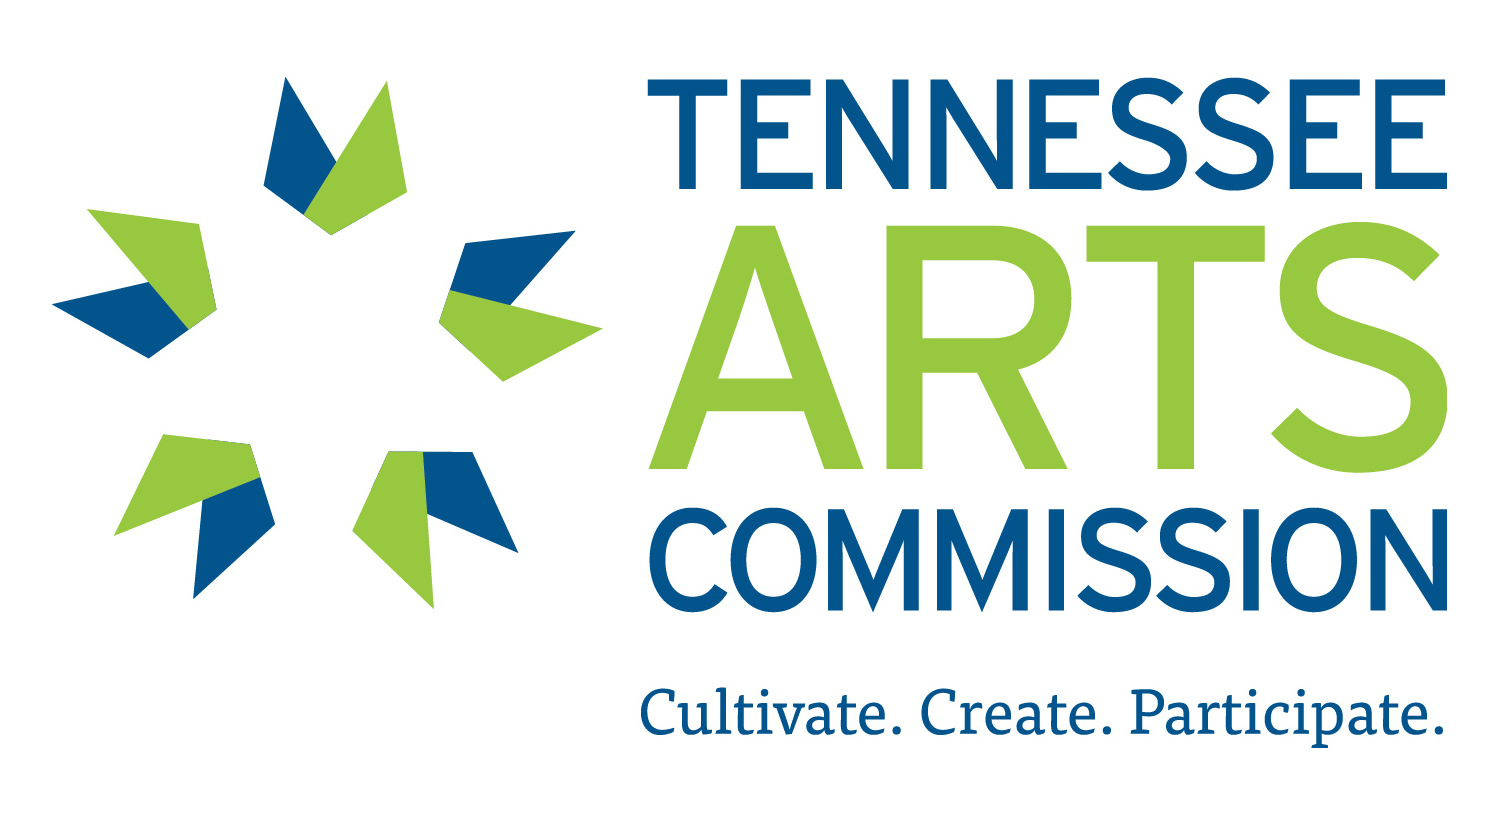 This project is funded under a grant contract with the state of Tennessee.  This workshop is made possible by an Arts Education-Teacher Training grant from Tennessee Arts Commission.  You can support Tennessee Arts Commission by purchasing an Arts license plate next time you renew your tags!! More info  HERE .